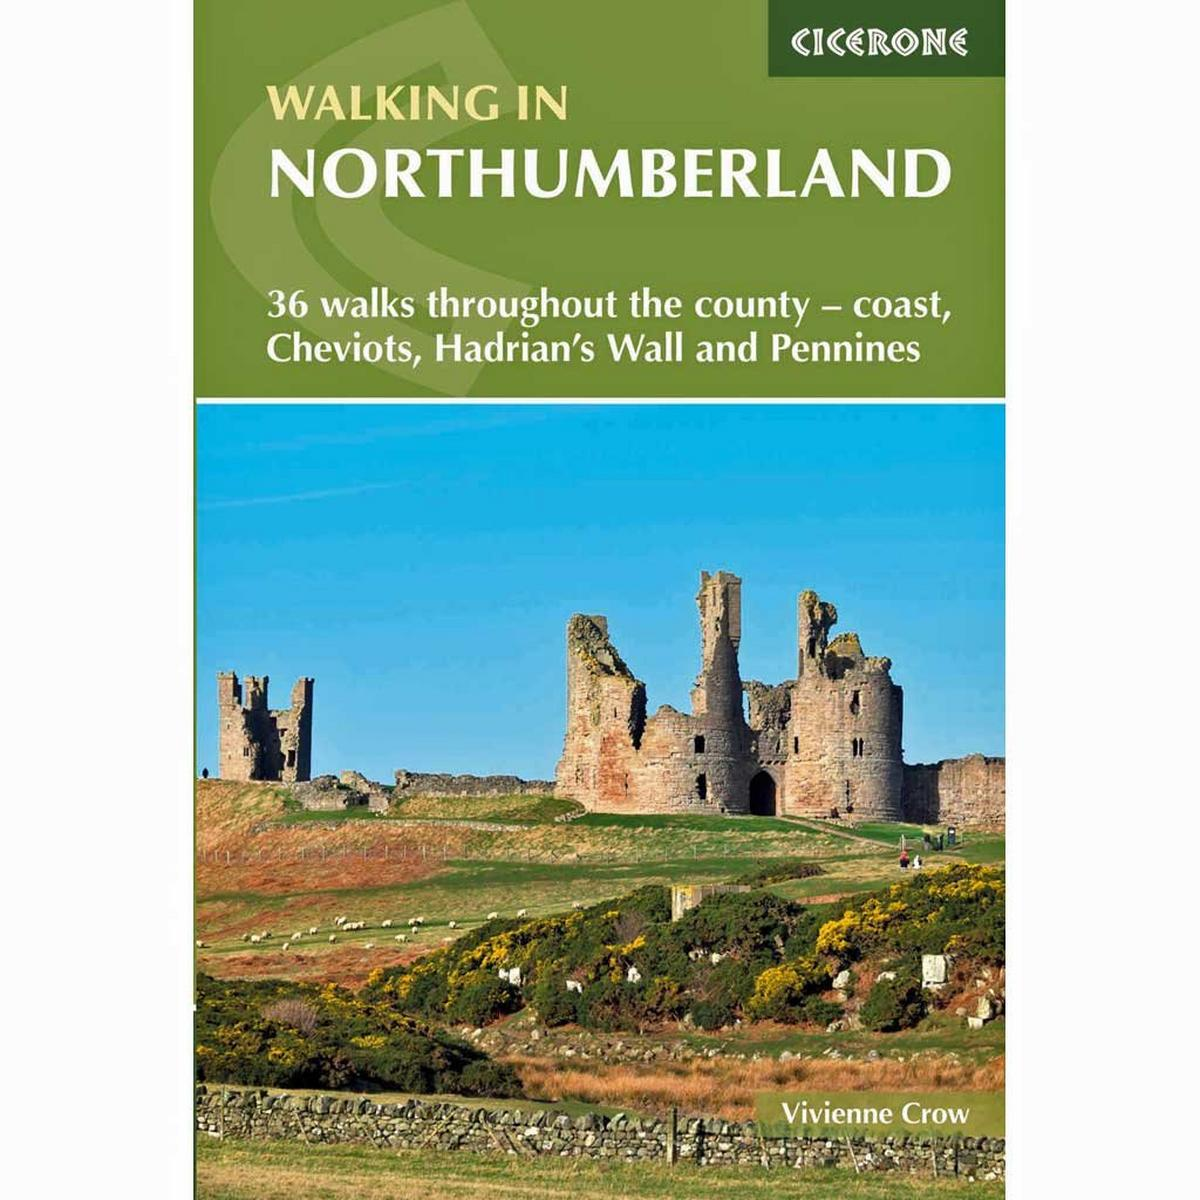 Cicerone Guide Book: Walking in Northumberland